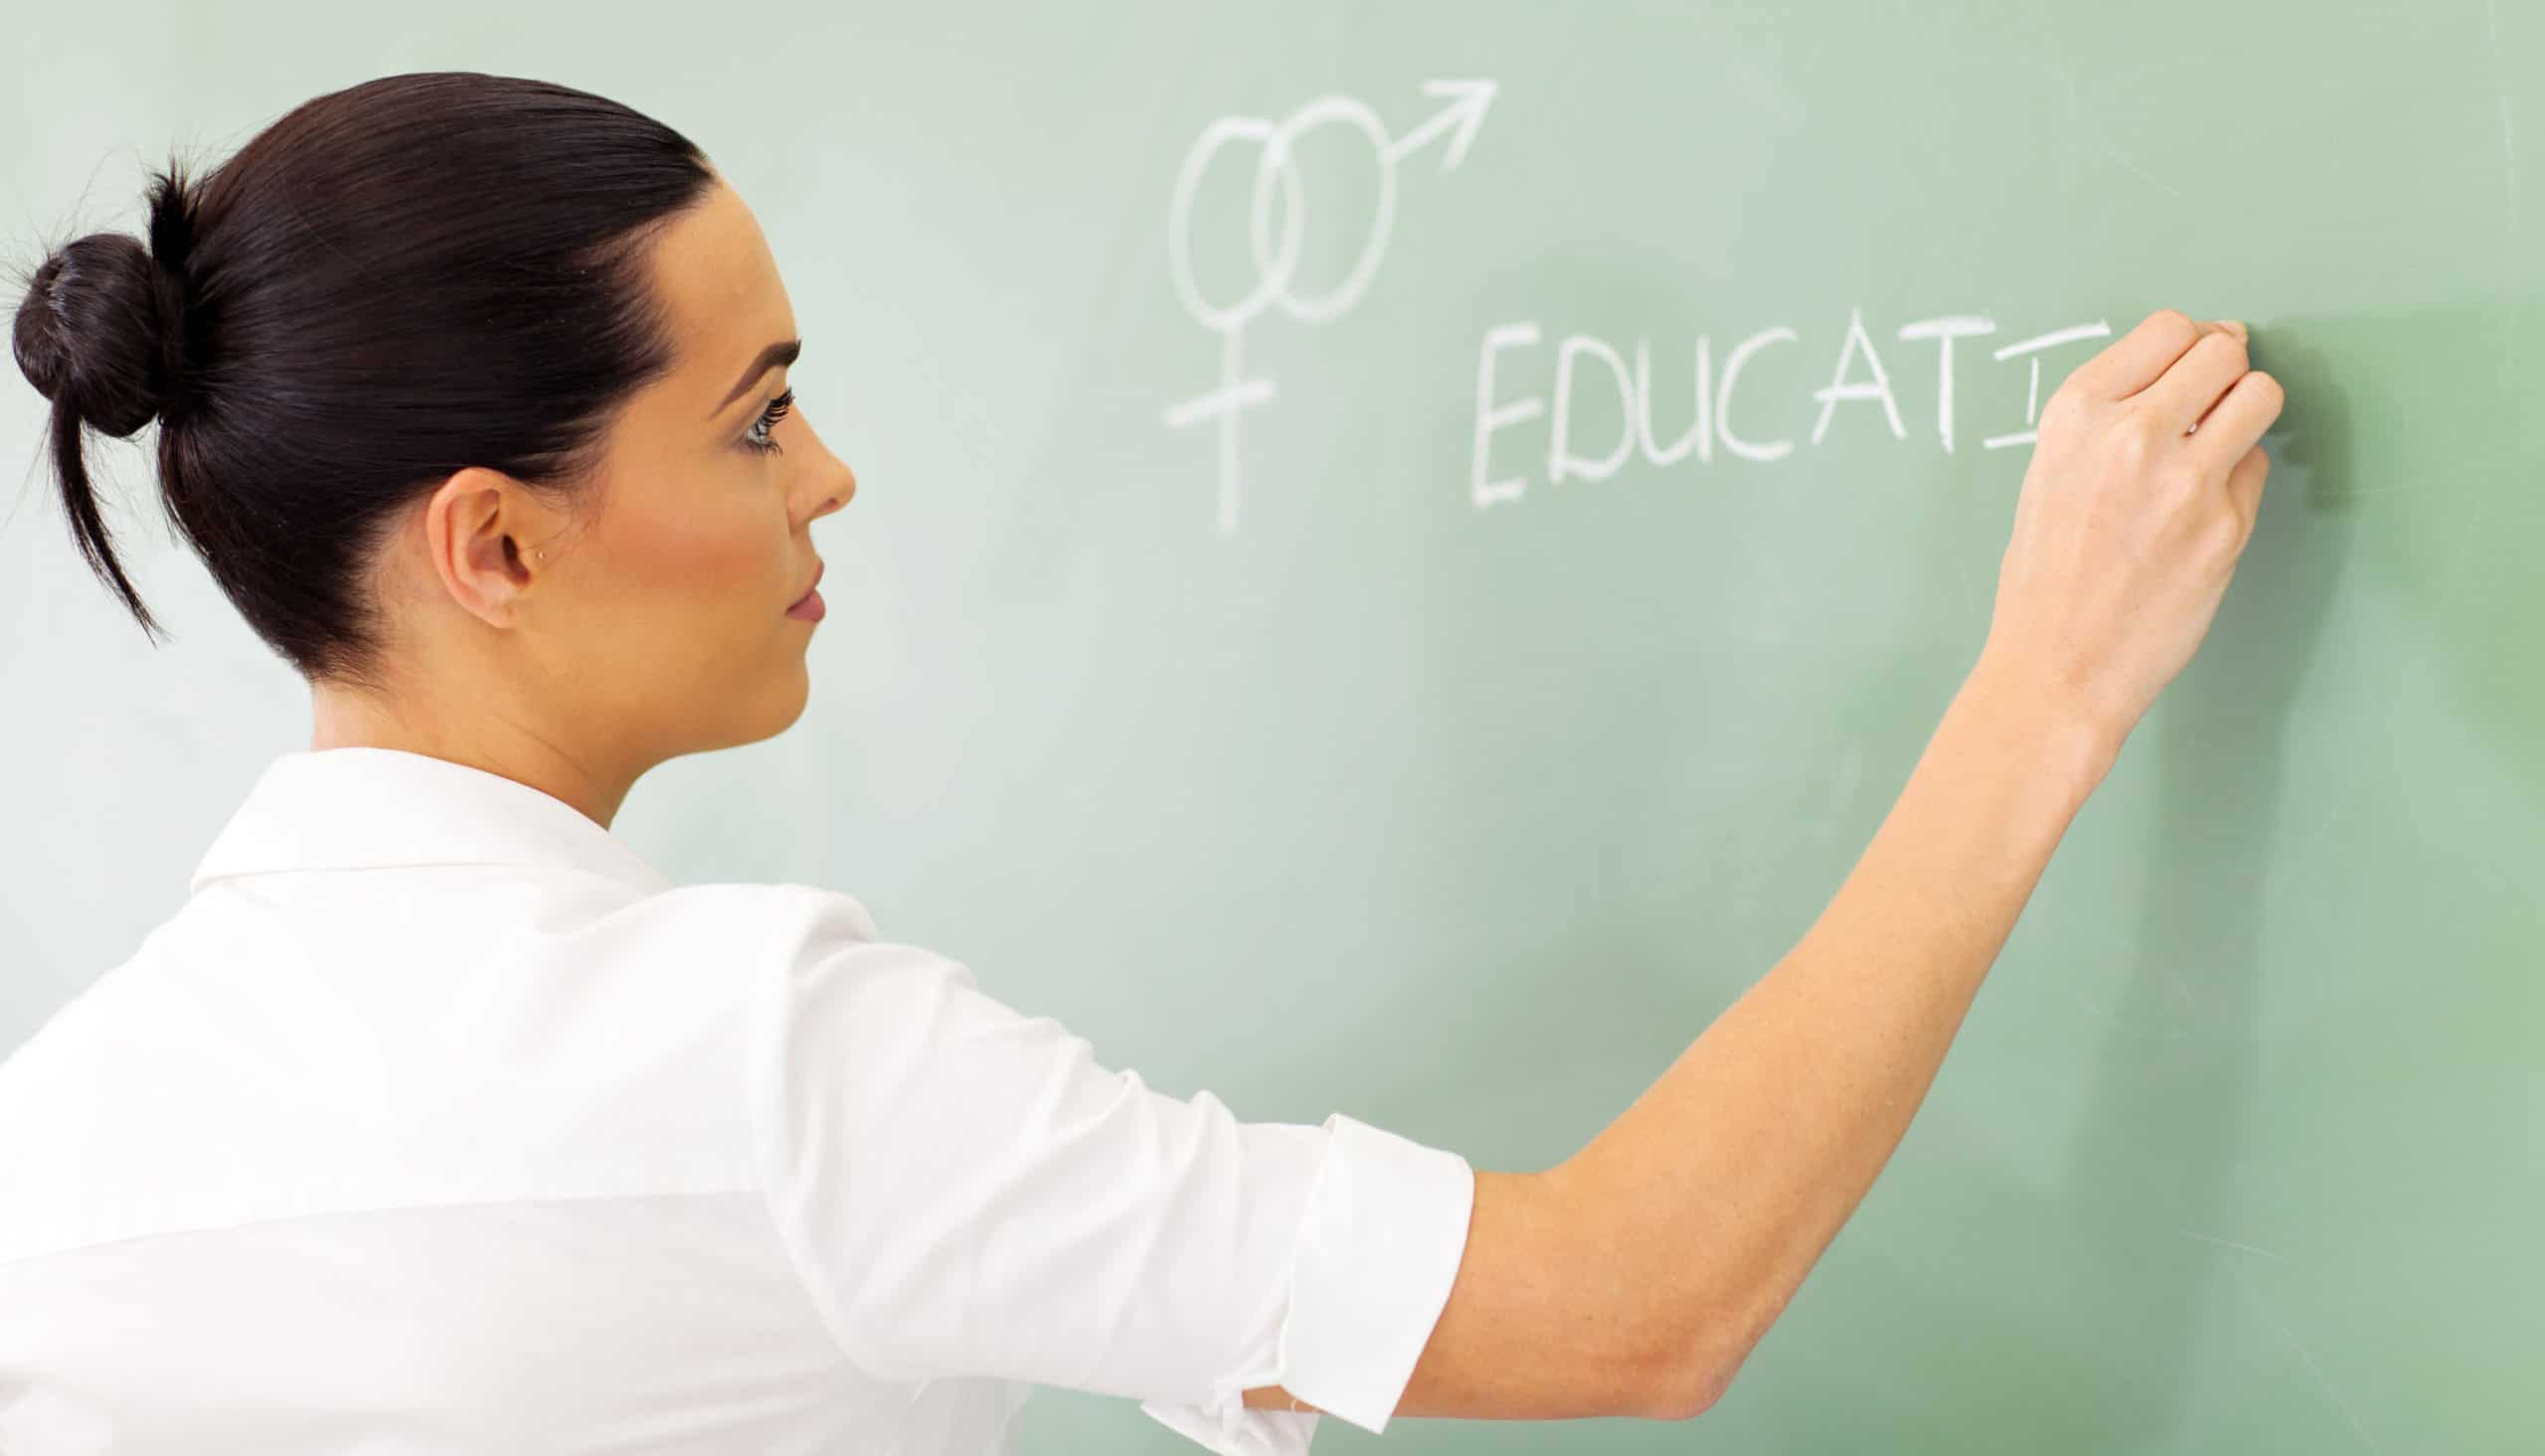 female high school educator writing sex education on chalkboard